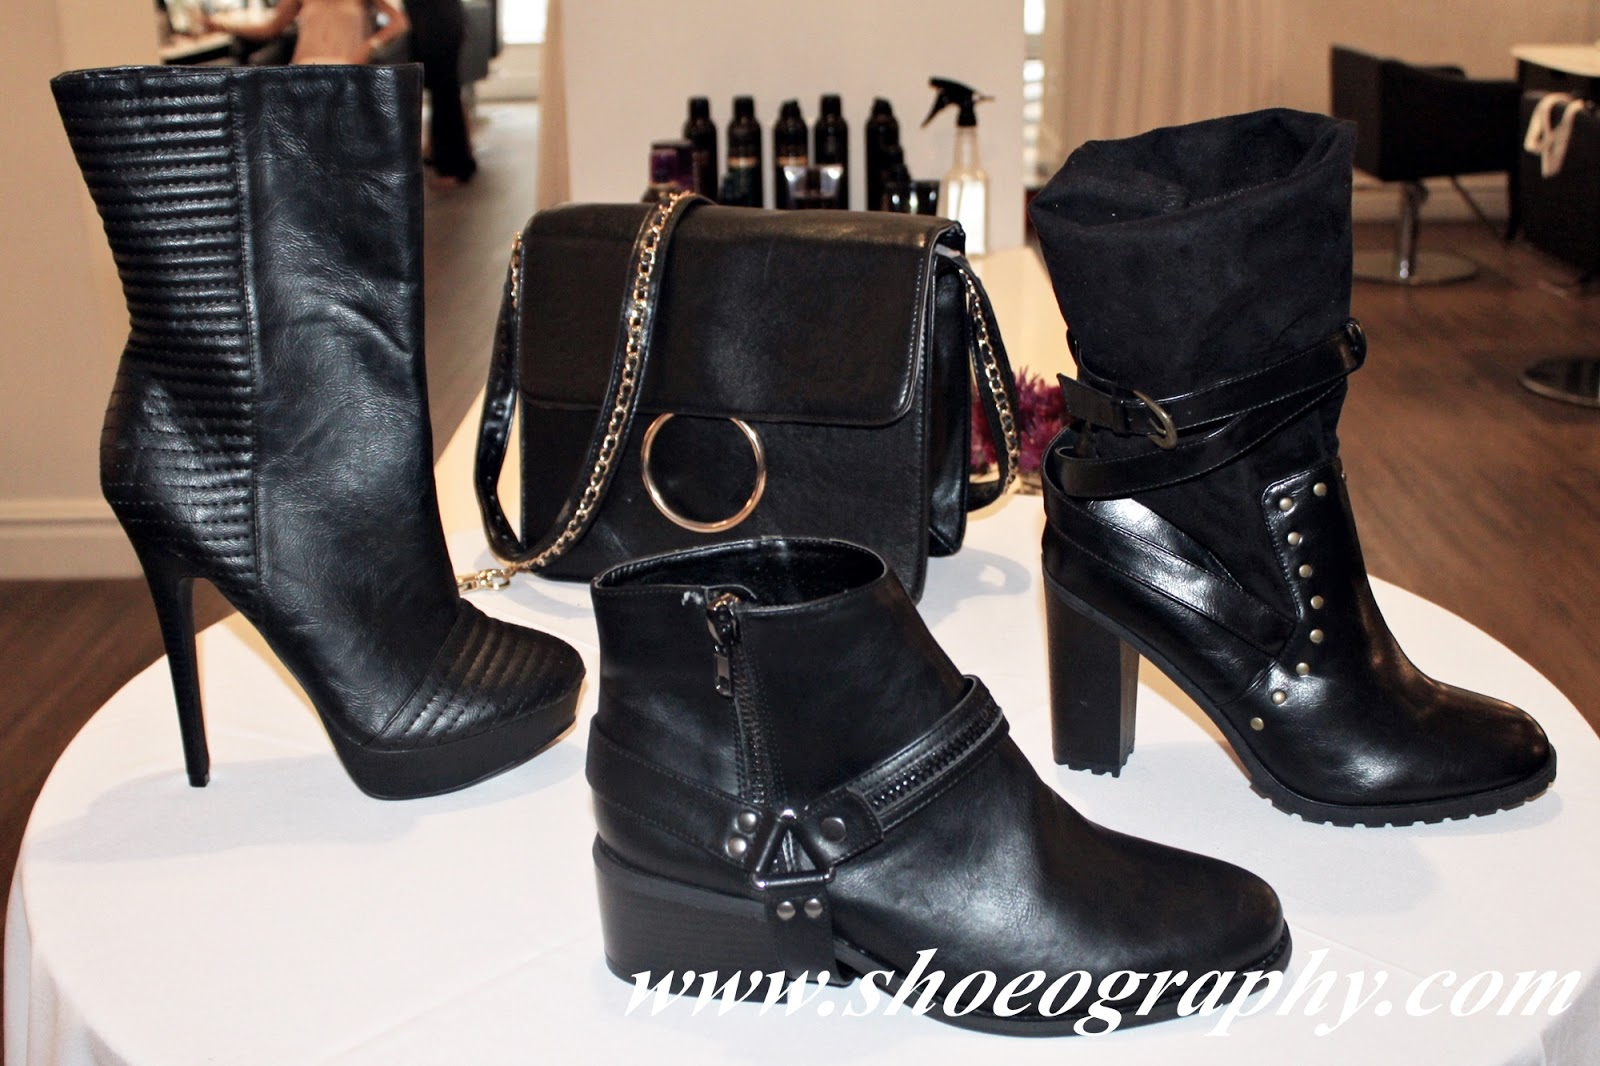 ShoeDazzle Bewitches With Dark Romance Collection